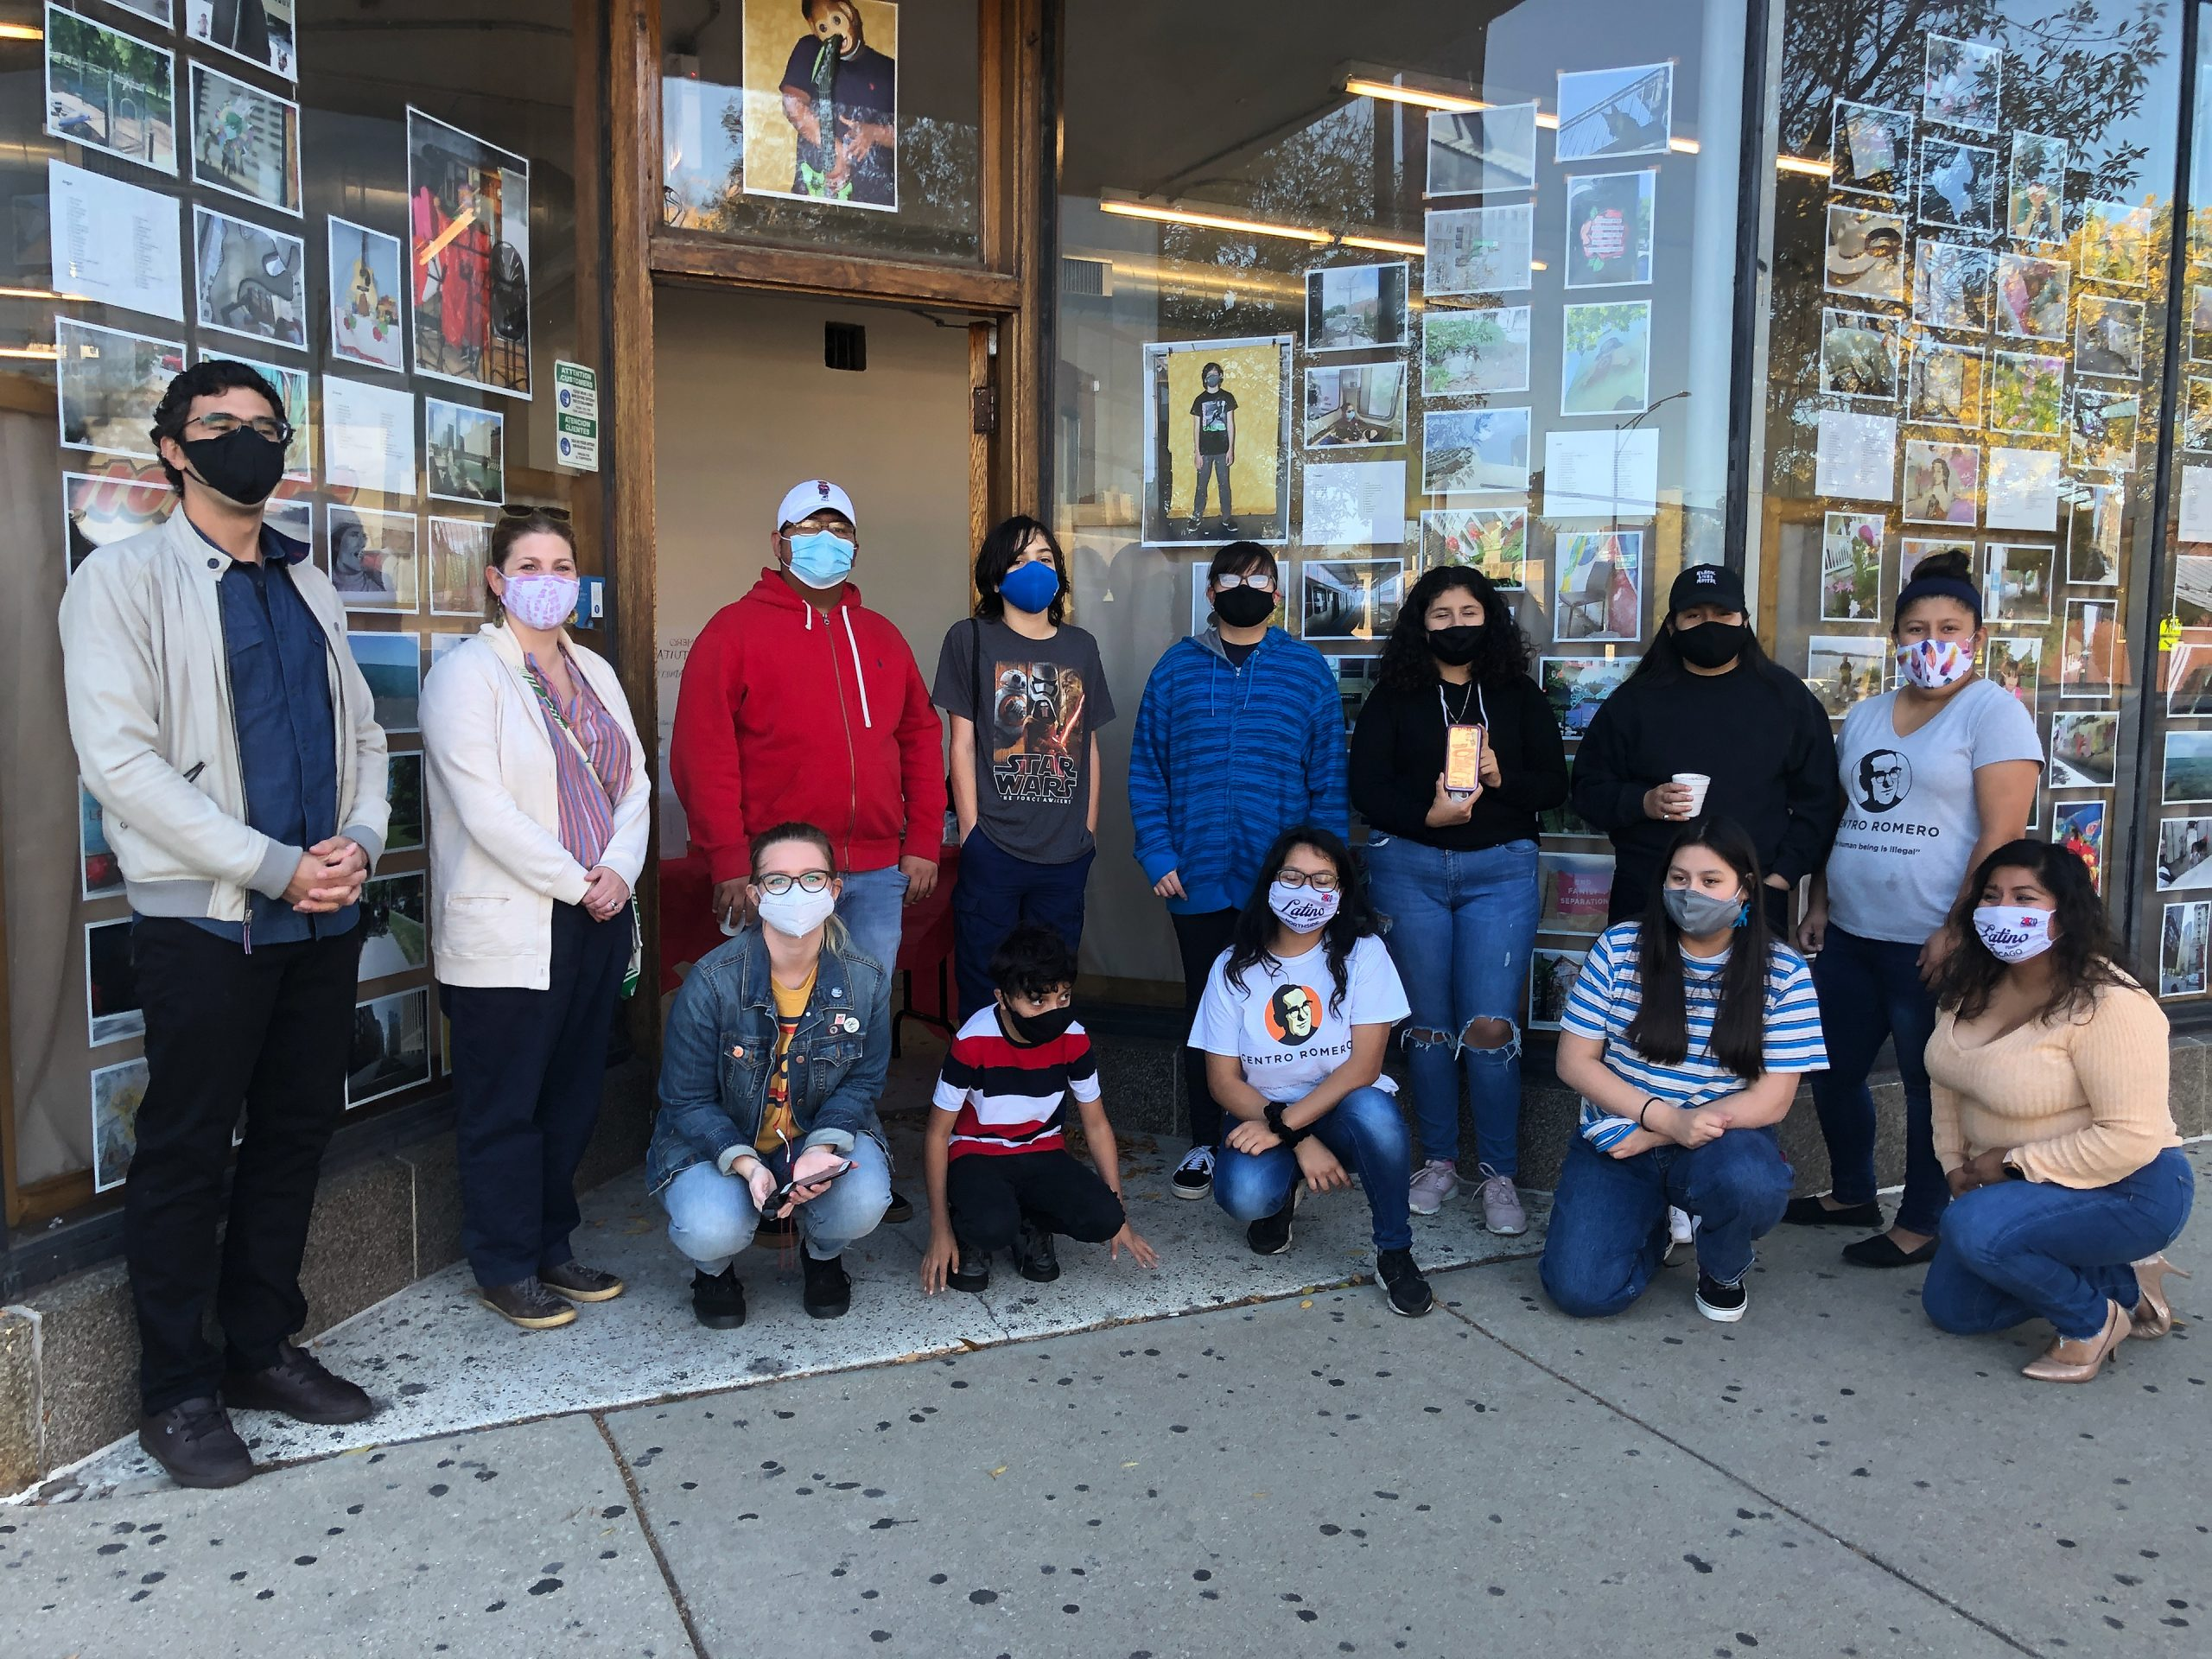 A group of people, wearing masks, stand outside a storefront